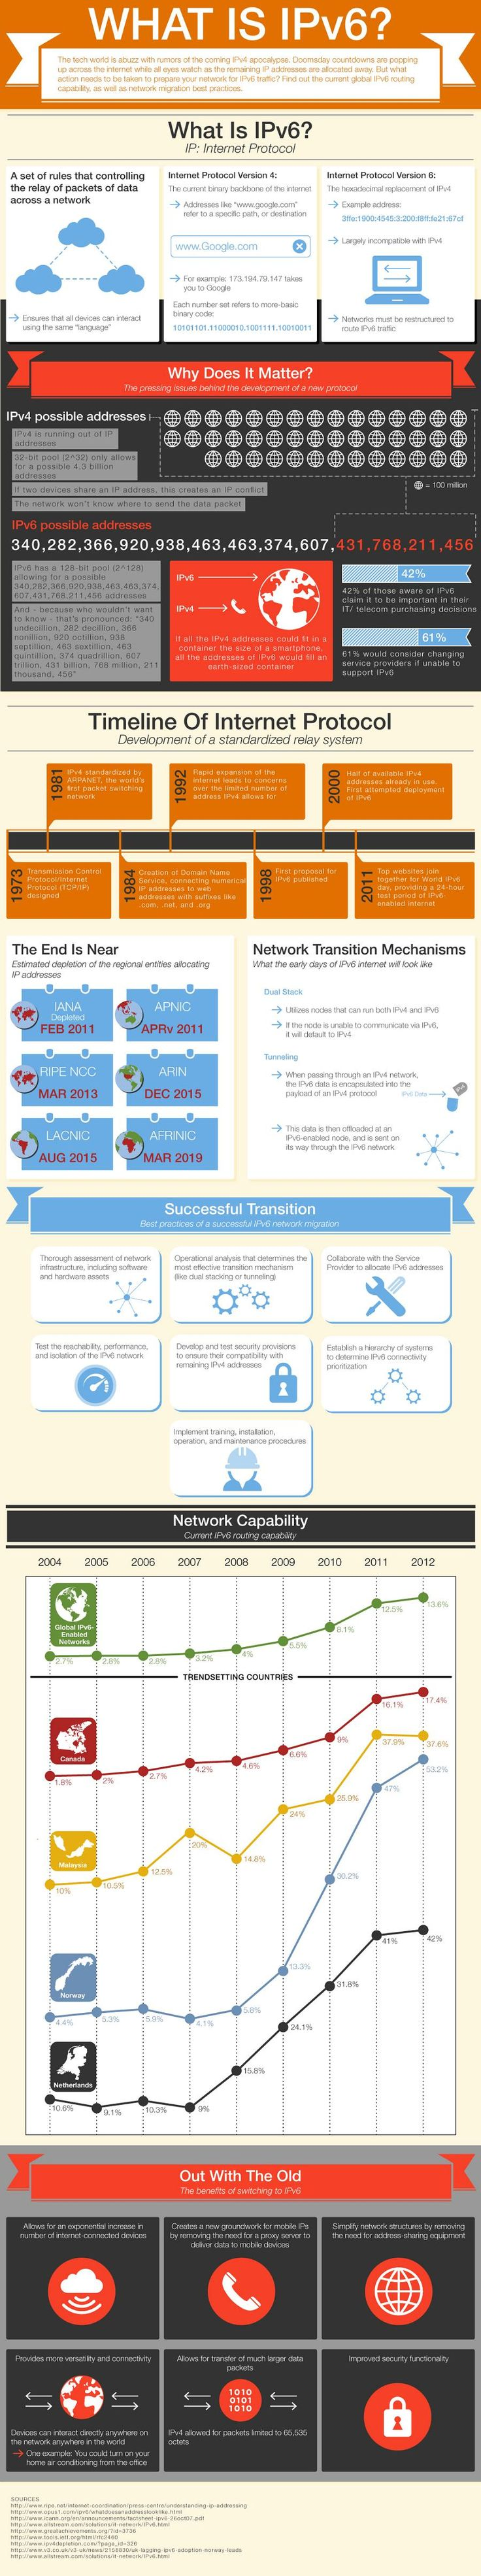 IPv6 infographic - What is IPv6? Why should you make the transition? When will IPv4 be depleted?